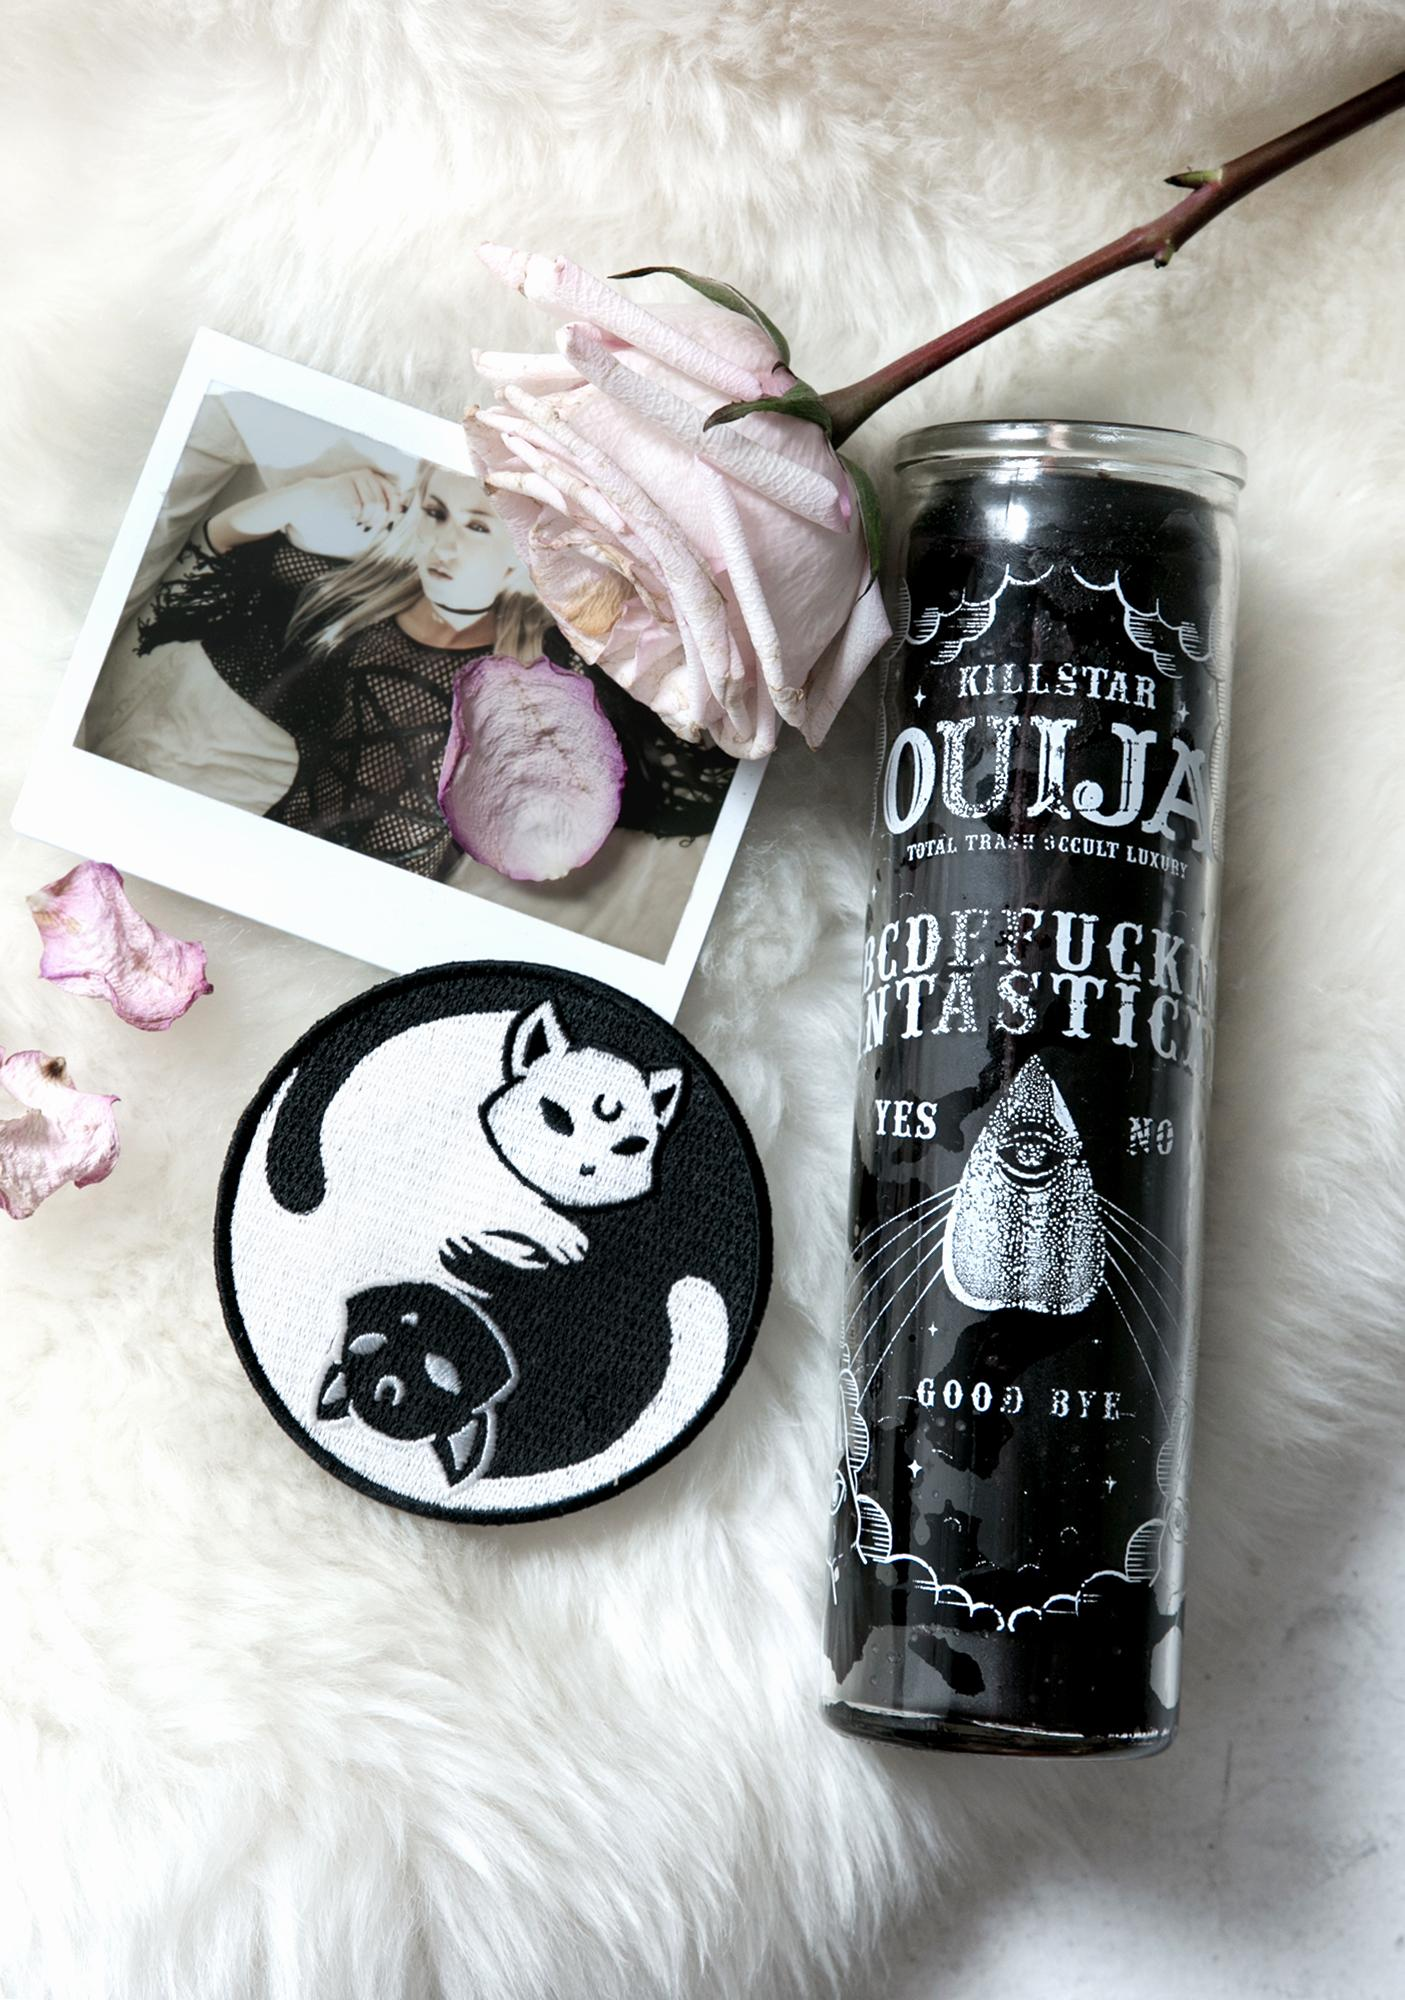 Killstar Ouija Candle